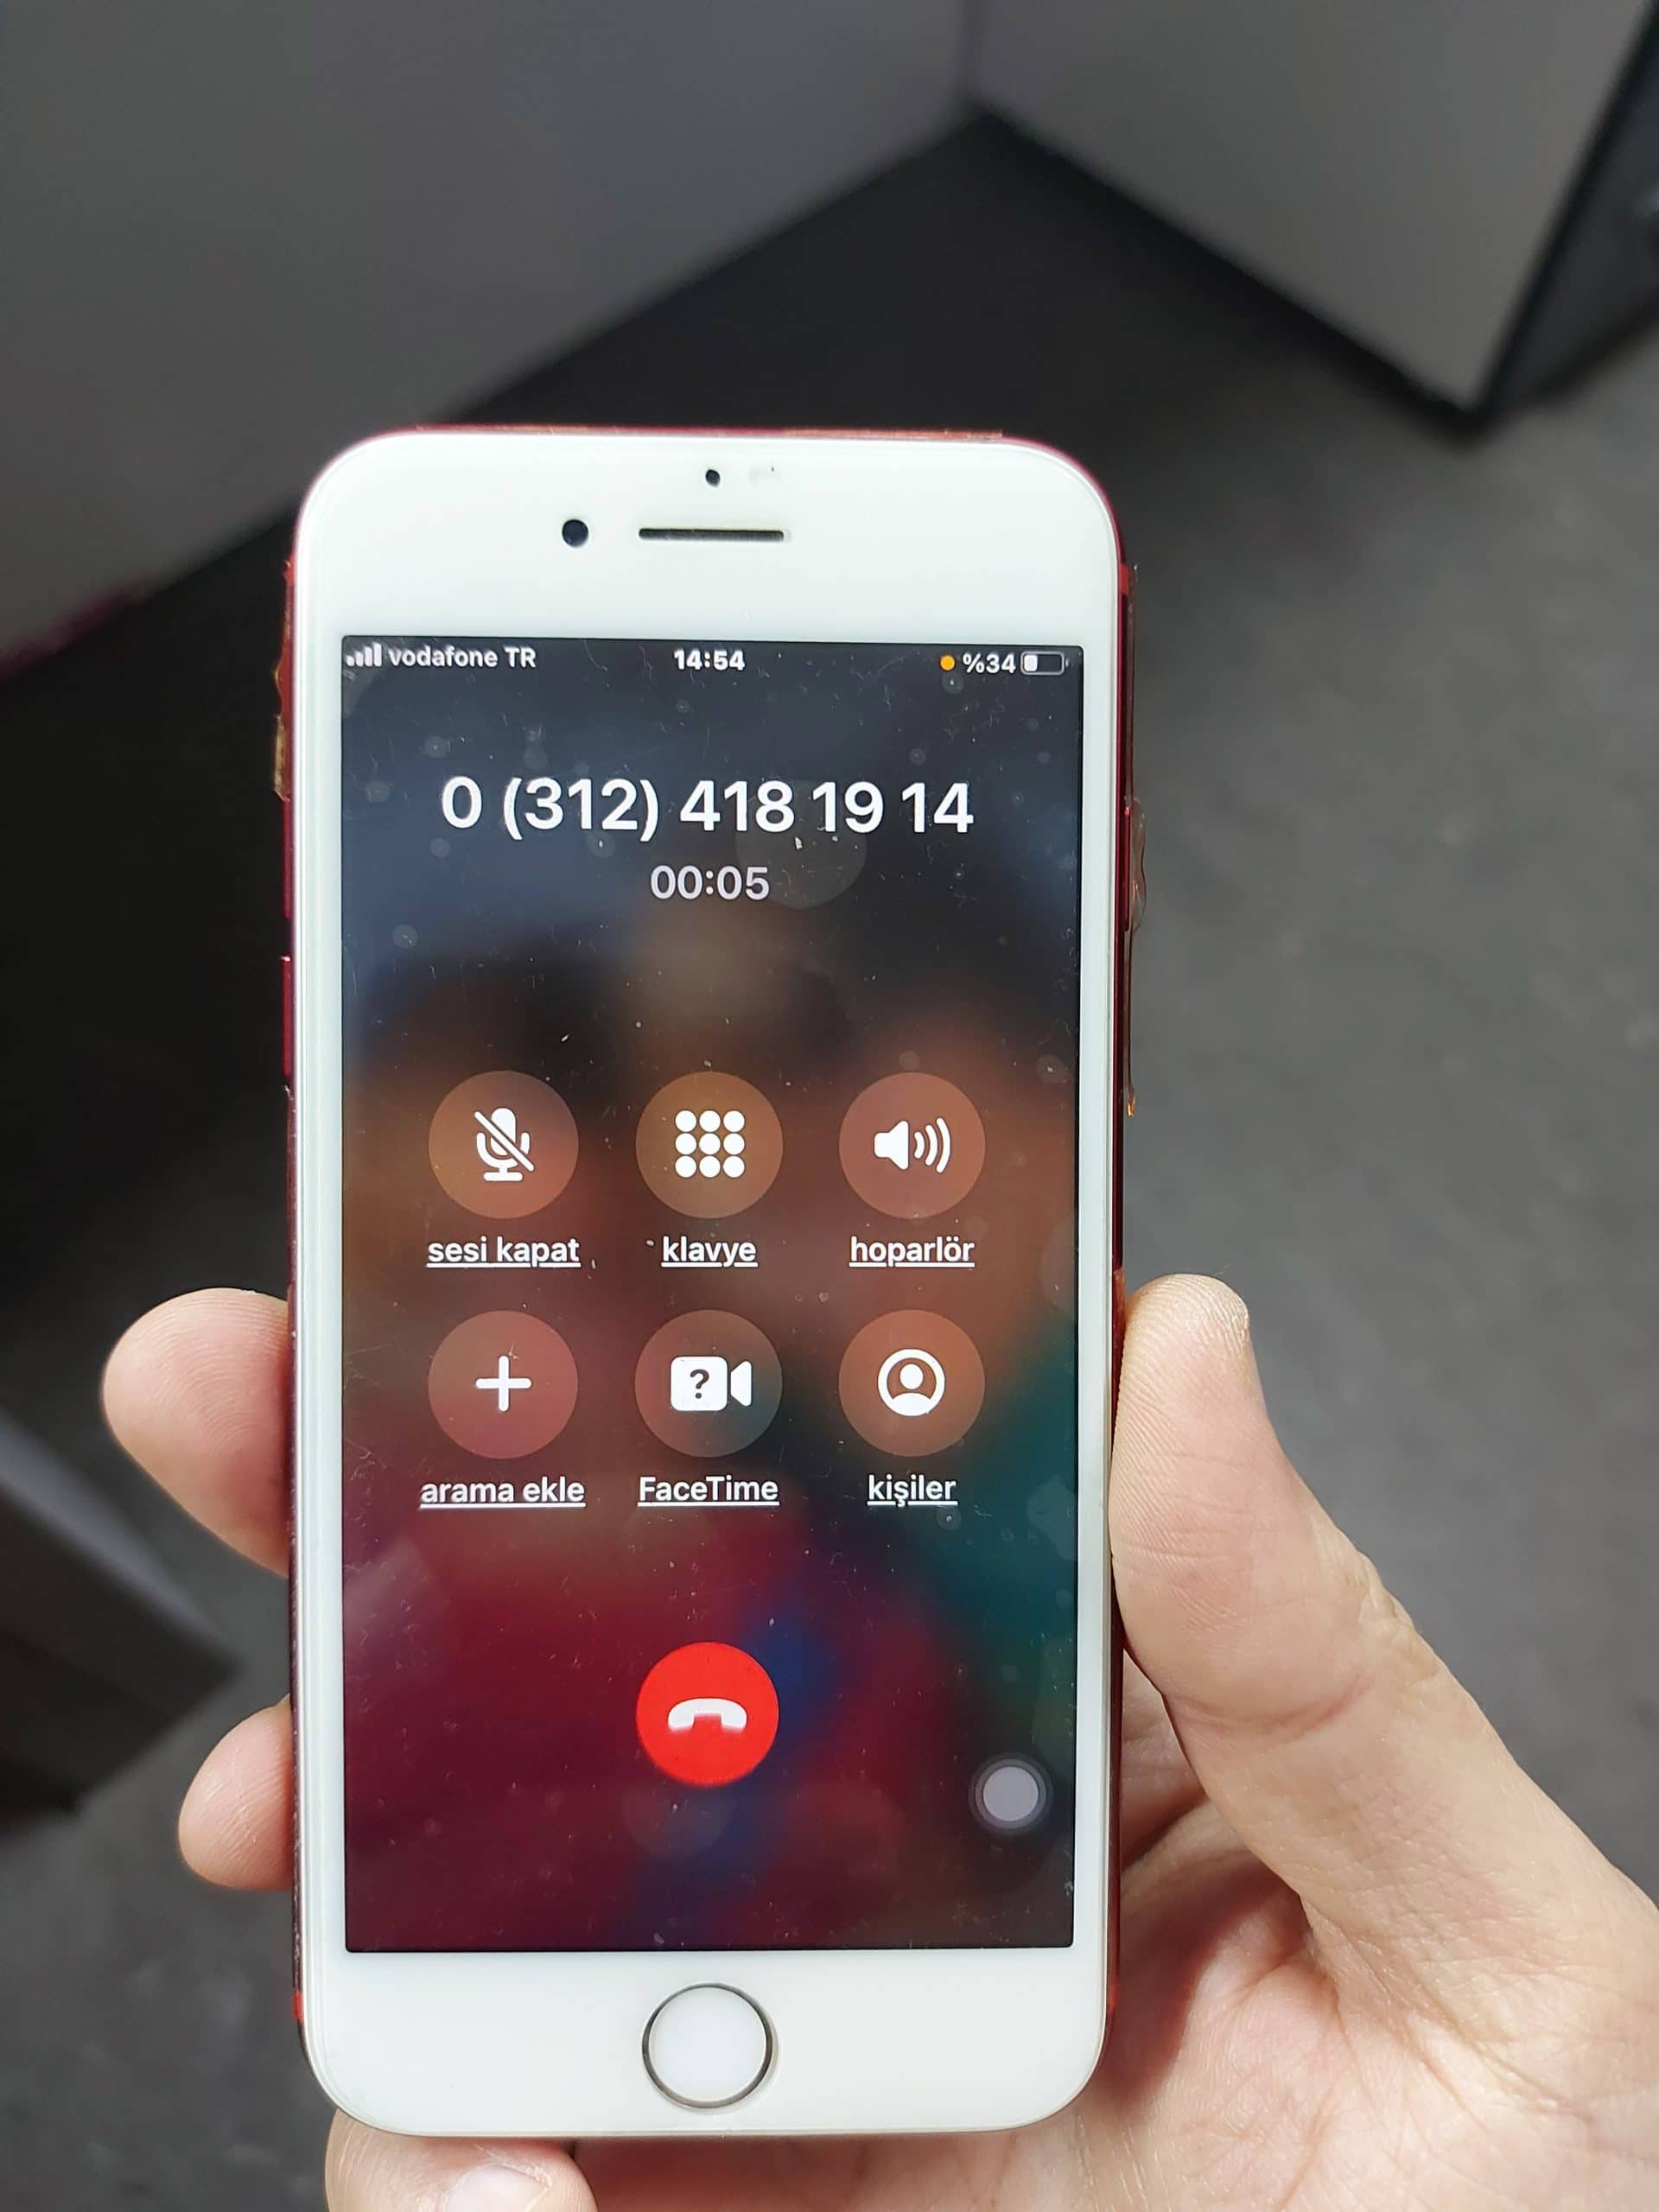 iphone ses iPhone Ses Sorunu Çözümü Ankara 20210107 145518 scaled